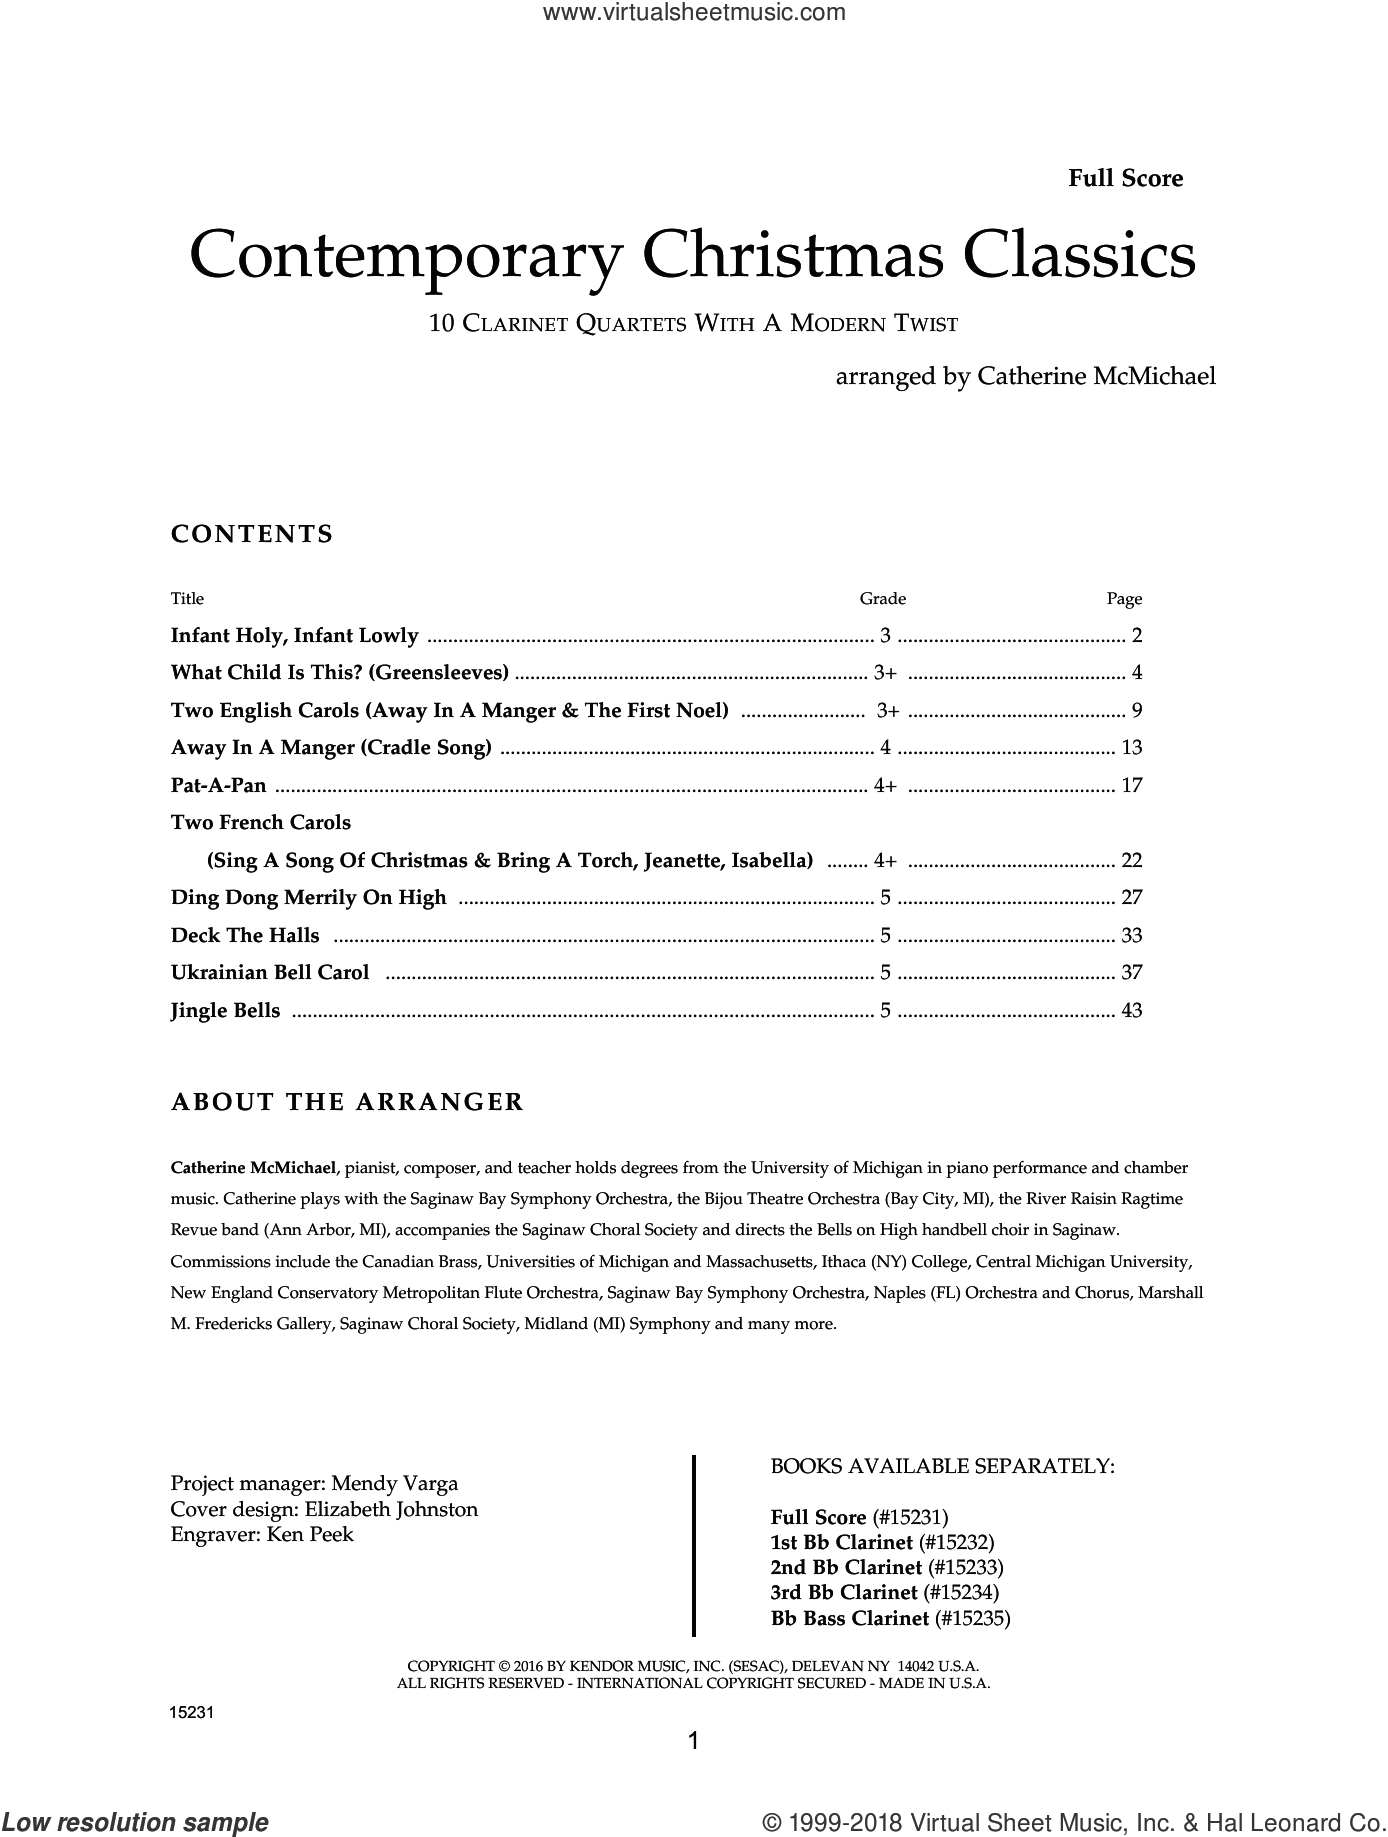 Contemporary Christmas Classics - Full Score sheet music for clarinet quartet by Catherine McMichael, intermediate skill level